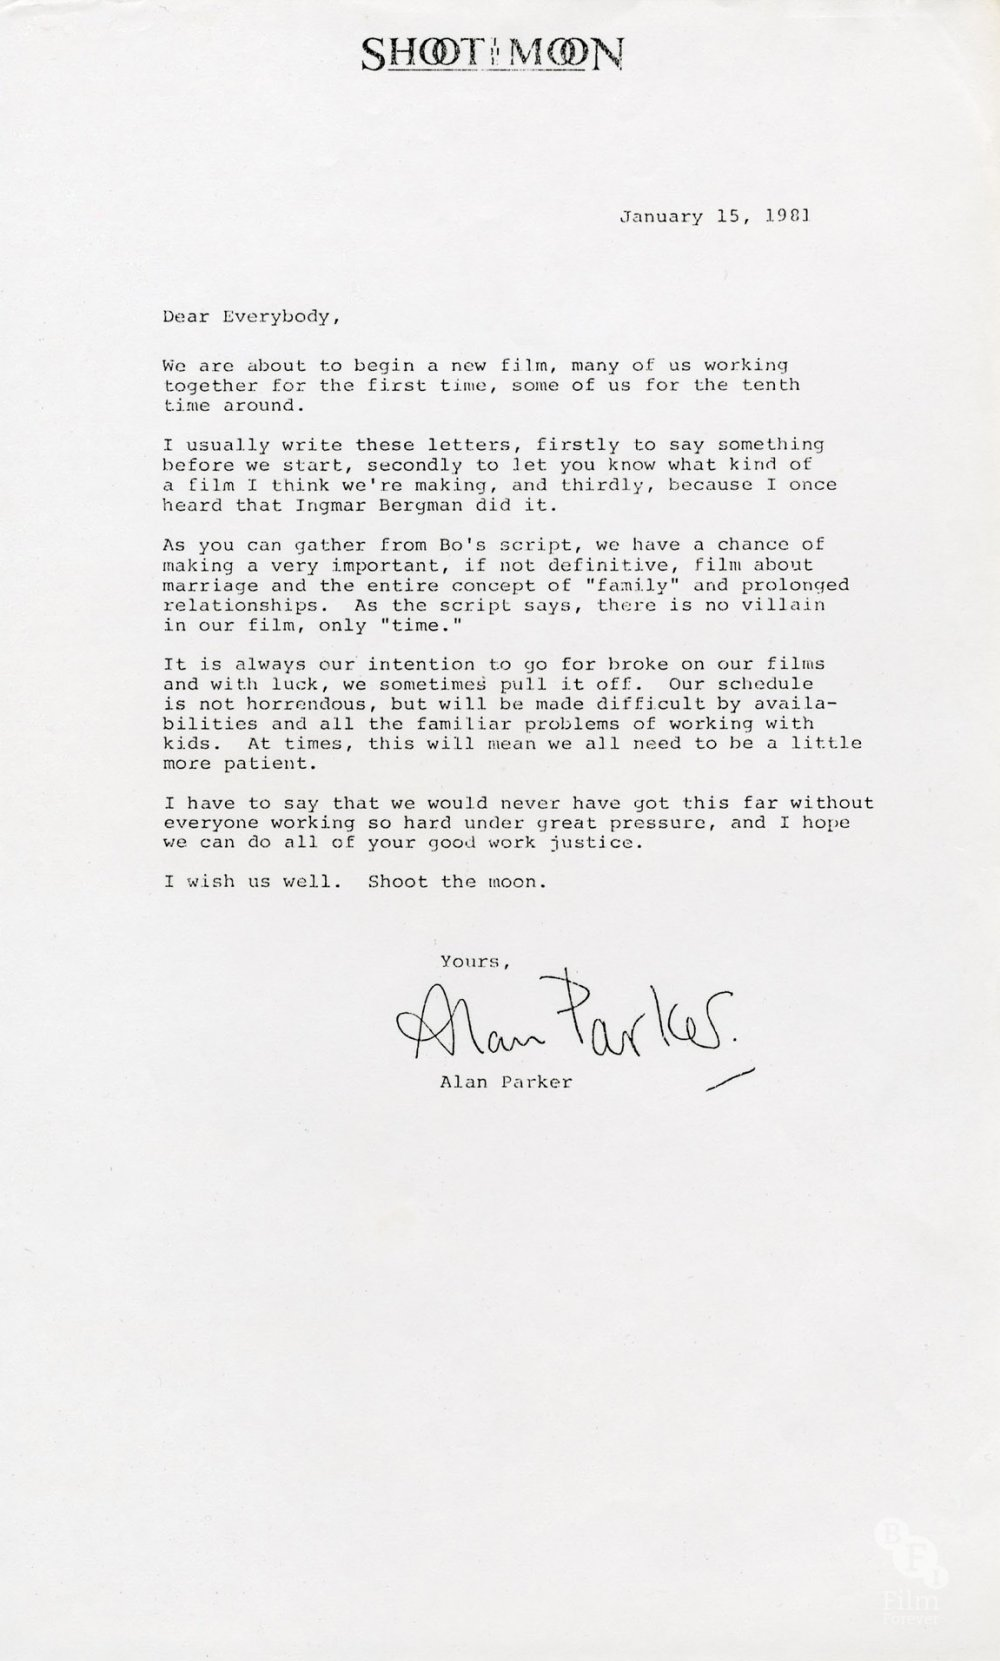 Alan Parker's letter to the crew of Shoot the Moon (1982)